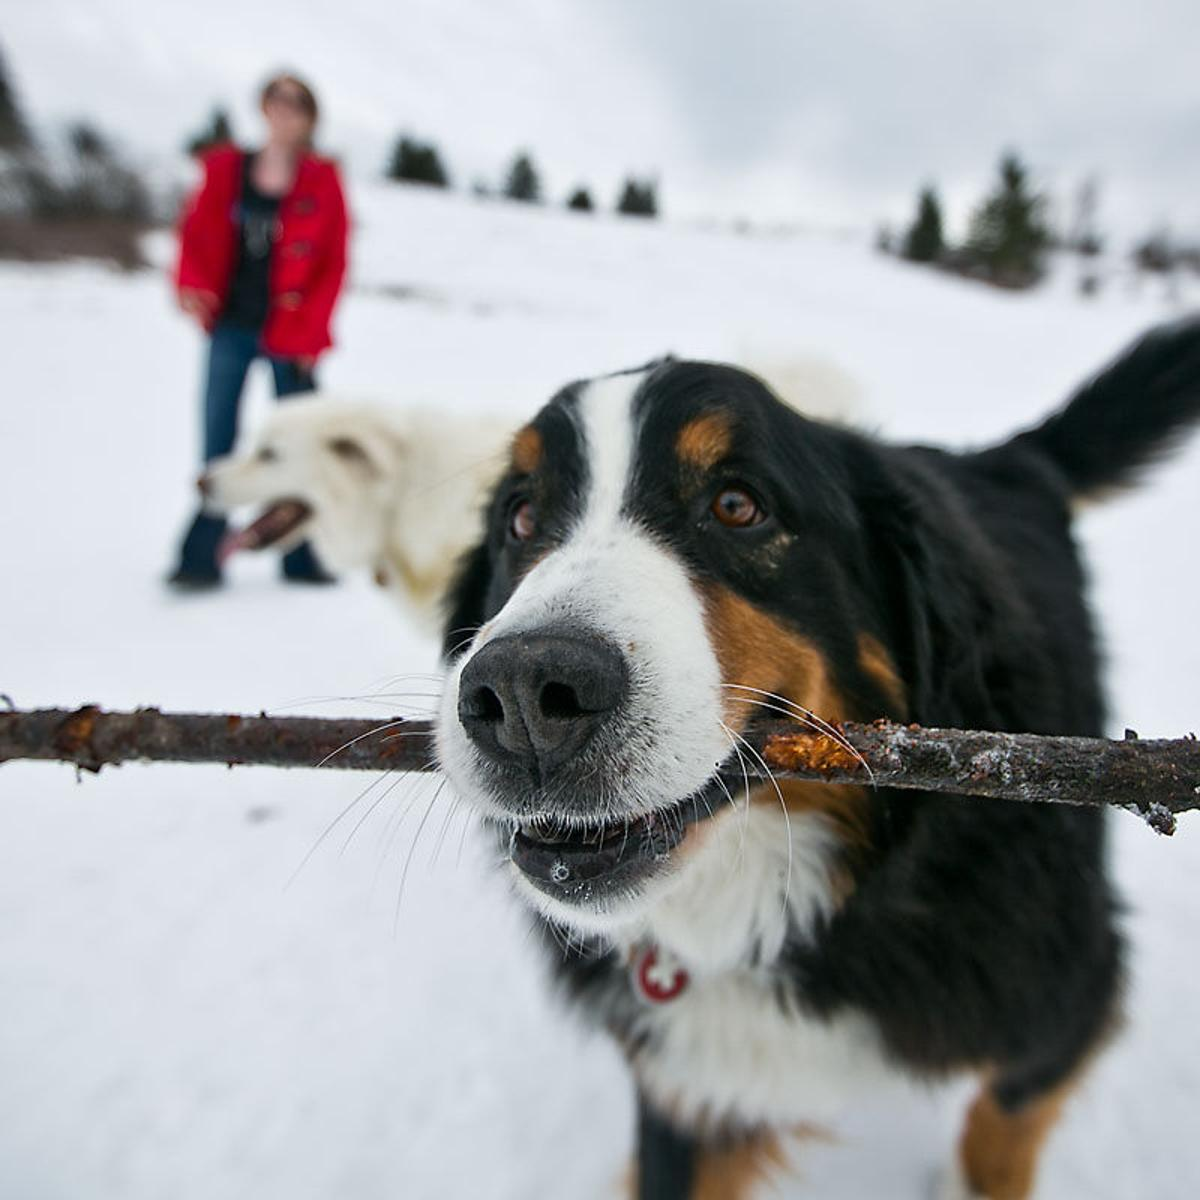 List Of Popular Bozeman Dog Names May Have You Rethinking